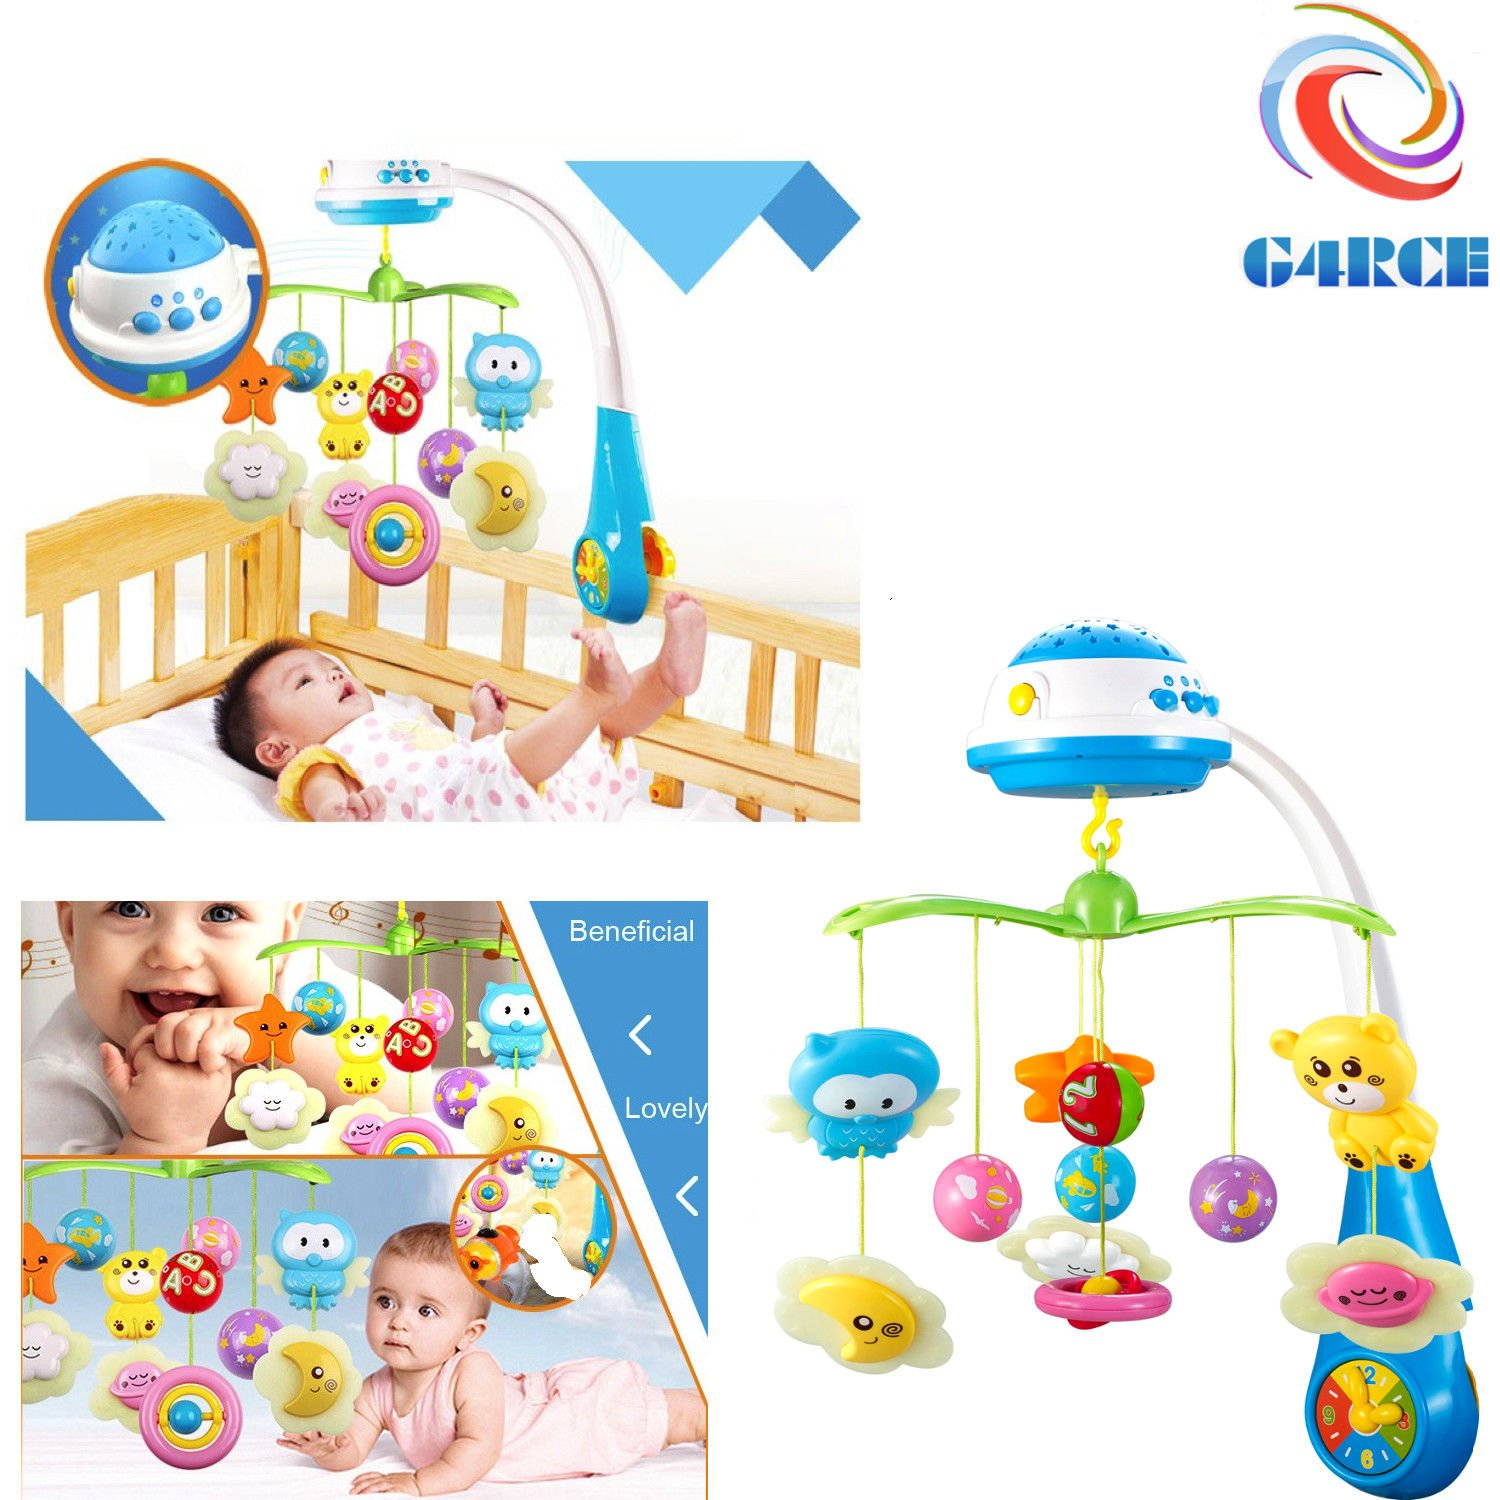 Baby Newborn Soft Musical Bed Cot Crib Buggy Car Mobile Stars Dreams Projection Nursery Lullaby Toys UK Generic